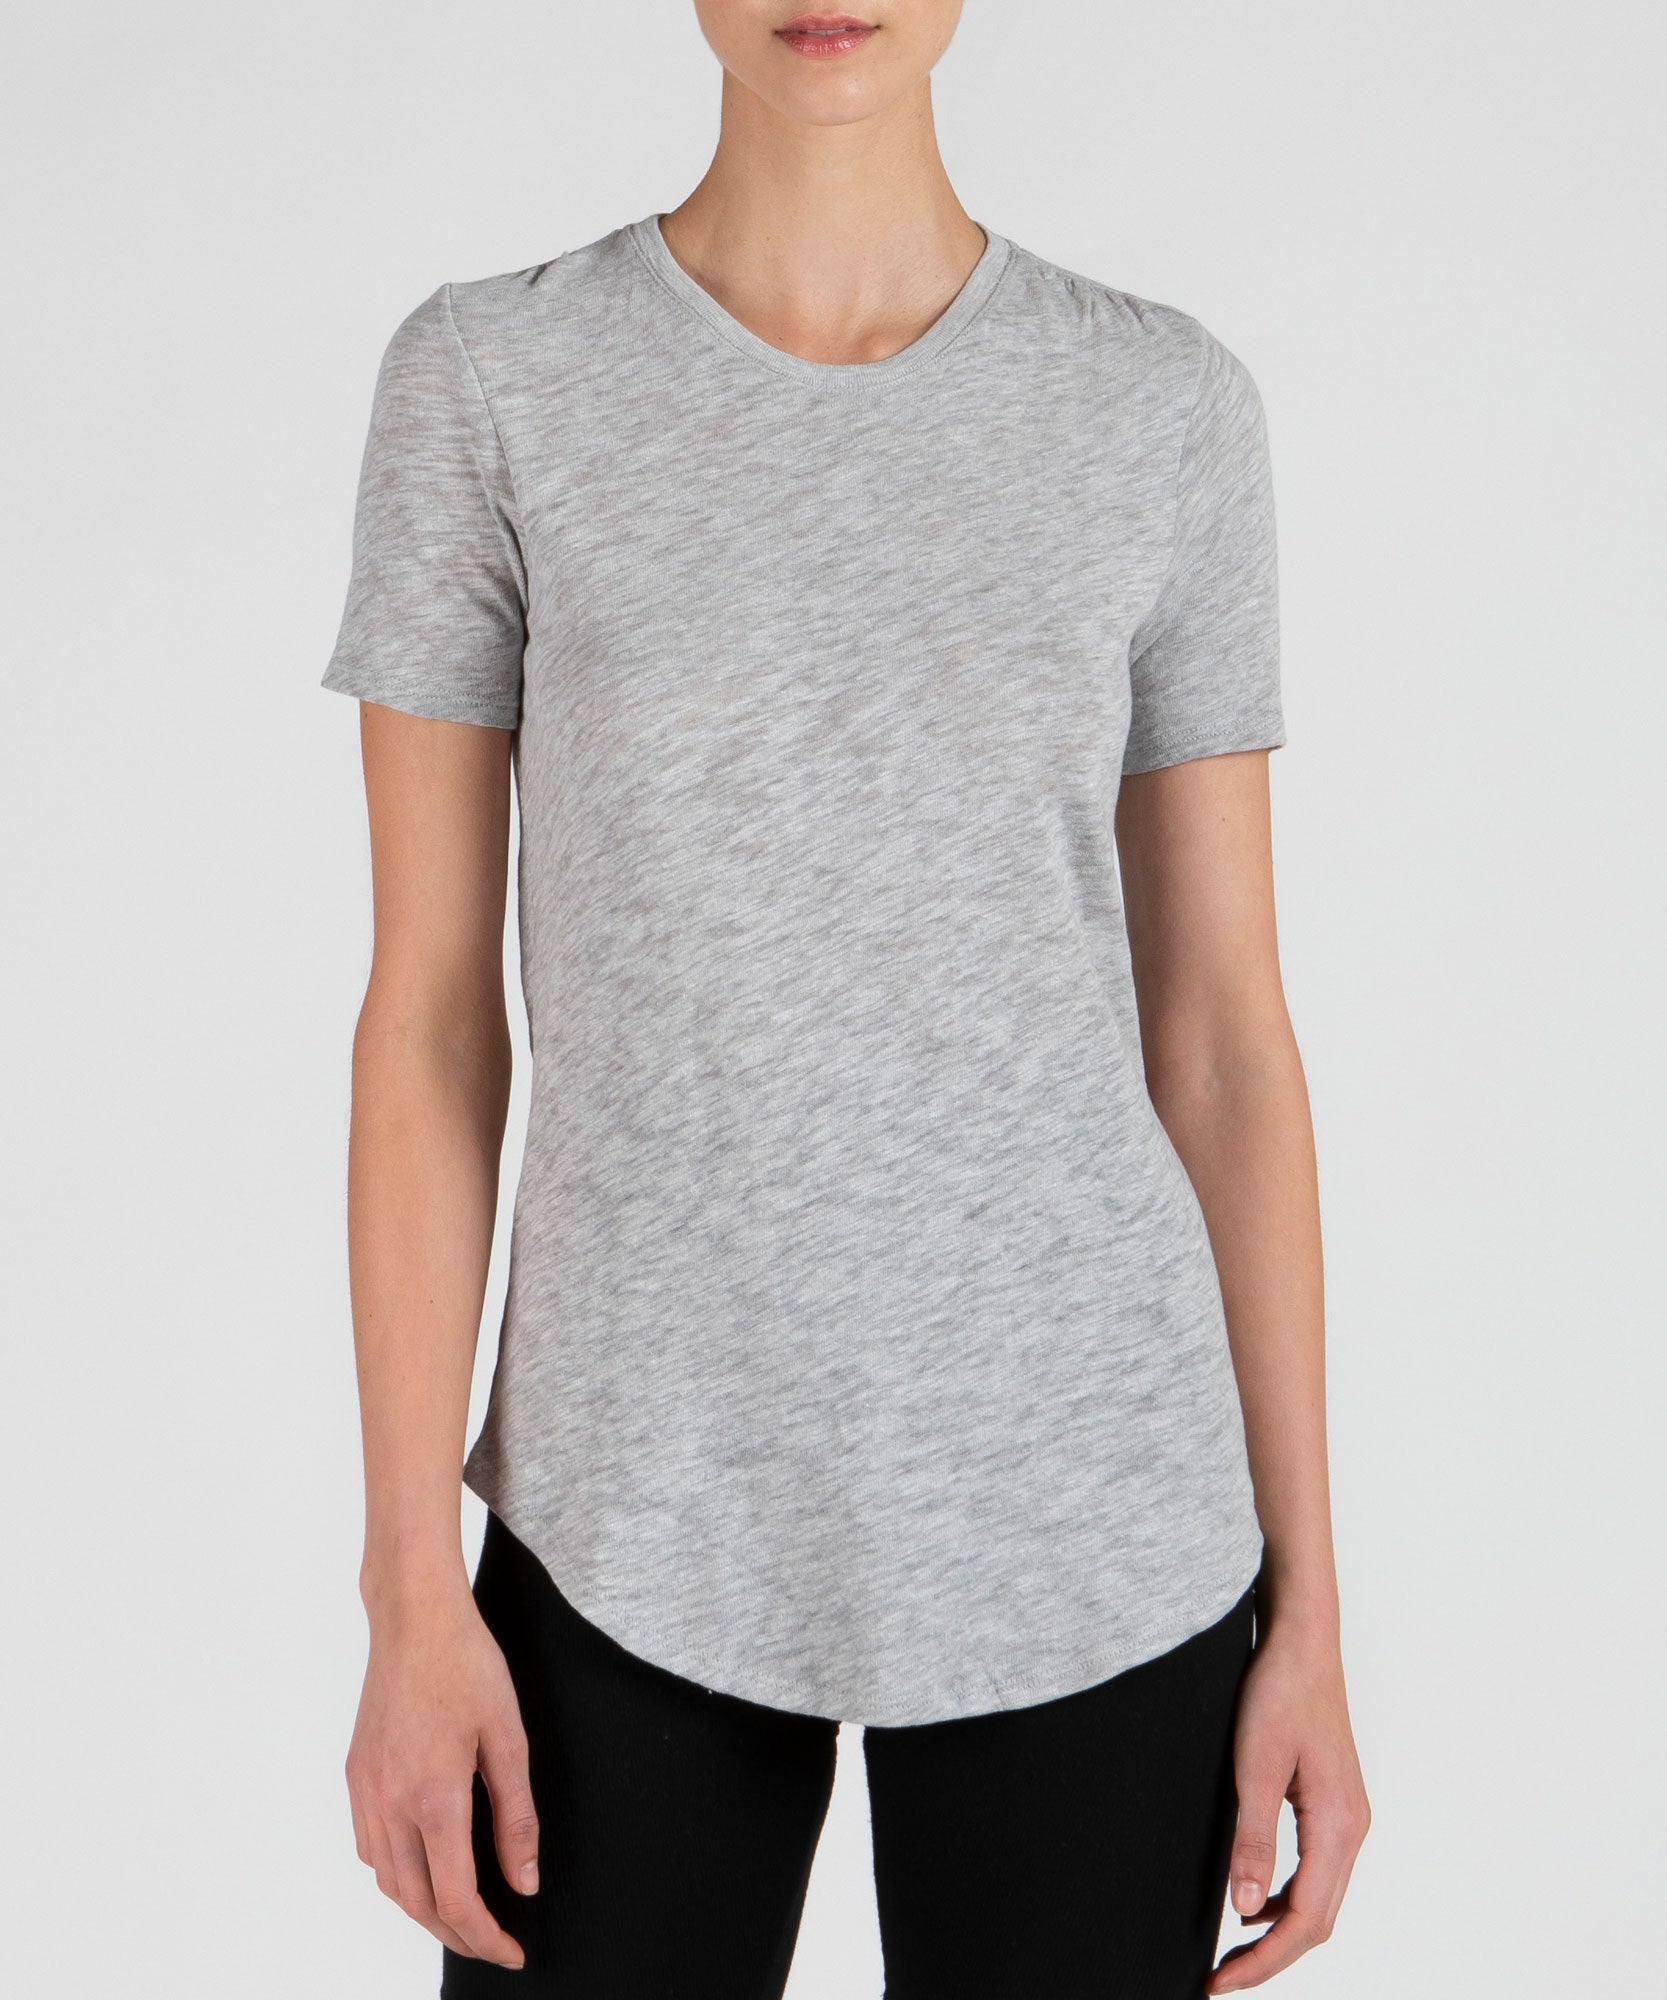 Heather Grey Slub Jersey Crew Neck Tee - Women's Cotton Short Sleeve Tee by ATM Anthony Thomas Melillo